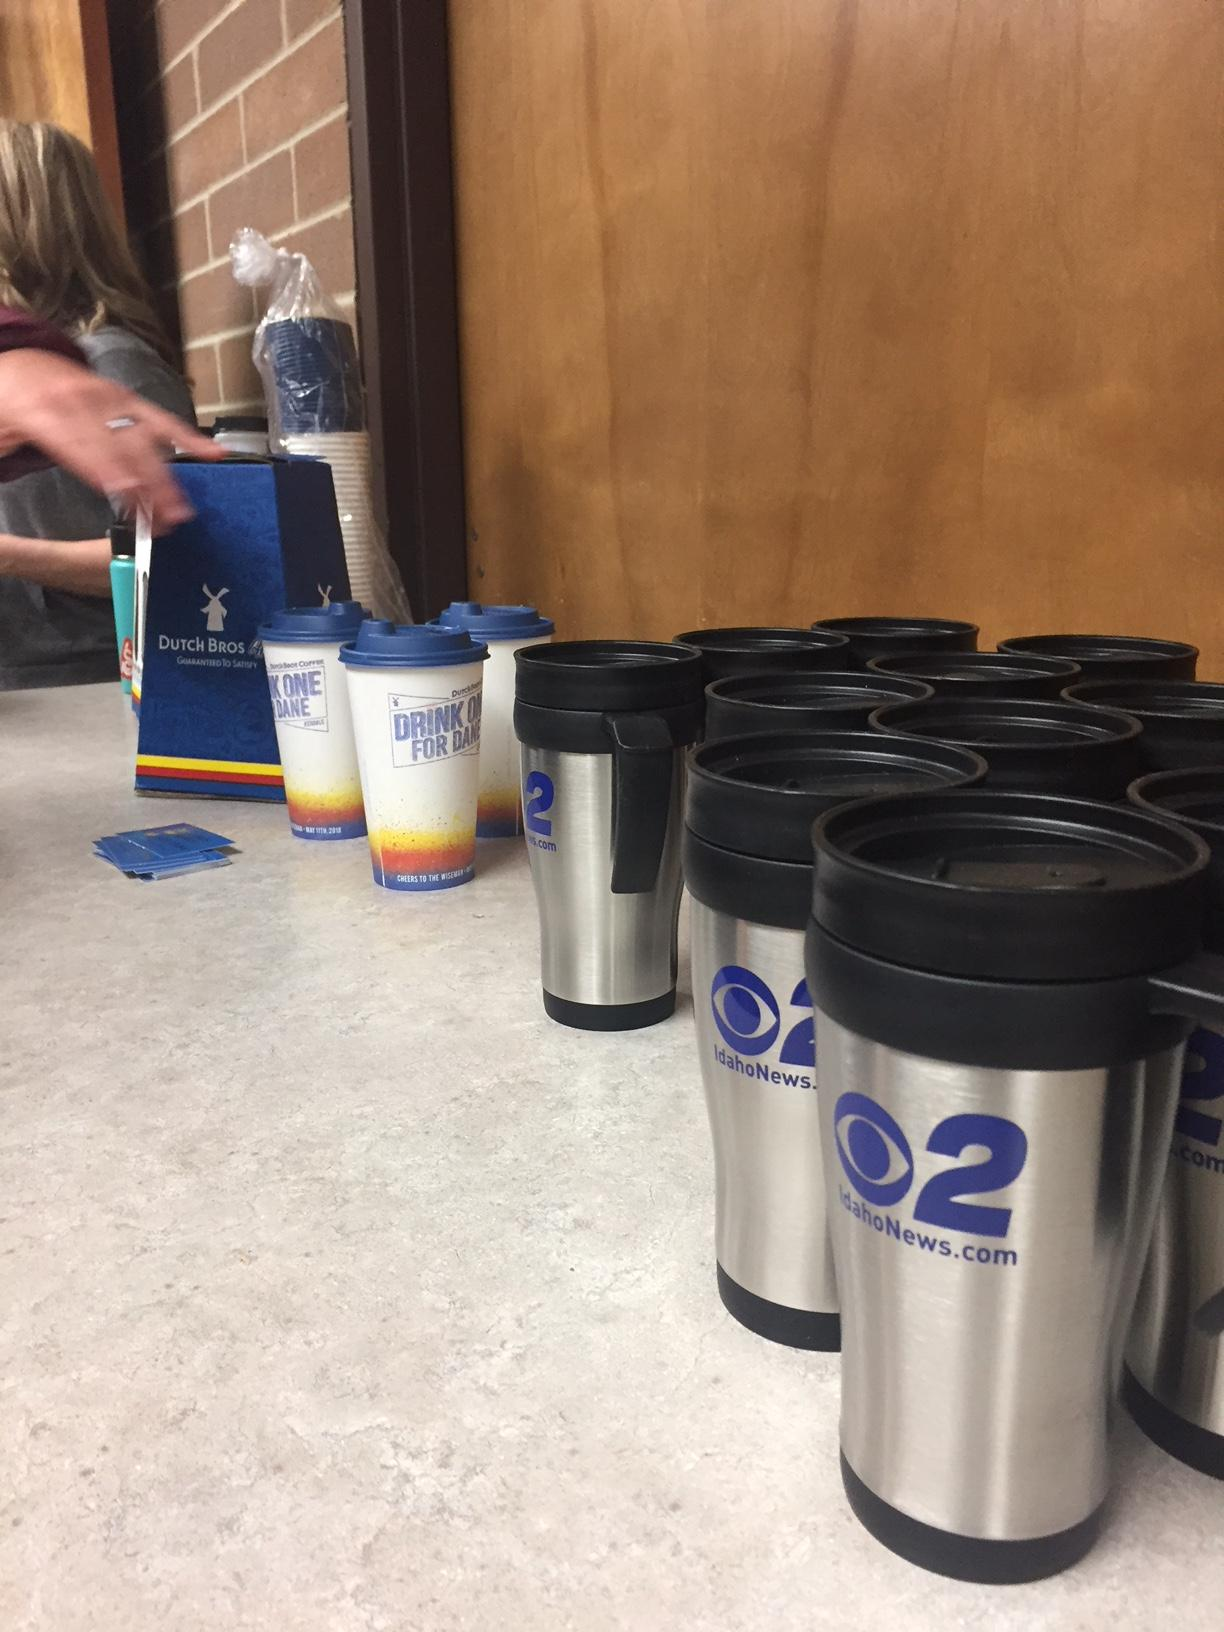 Mugshot Mondays: This week's winner is Cole Valley Christian School in Boise! We helped deliver free Dutch Bros. Coffee and KBOI mugs!Want your business to be next? Enter: https://bit.ly/2JvKhVe